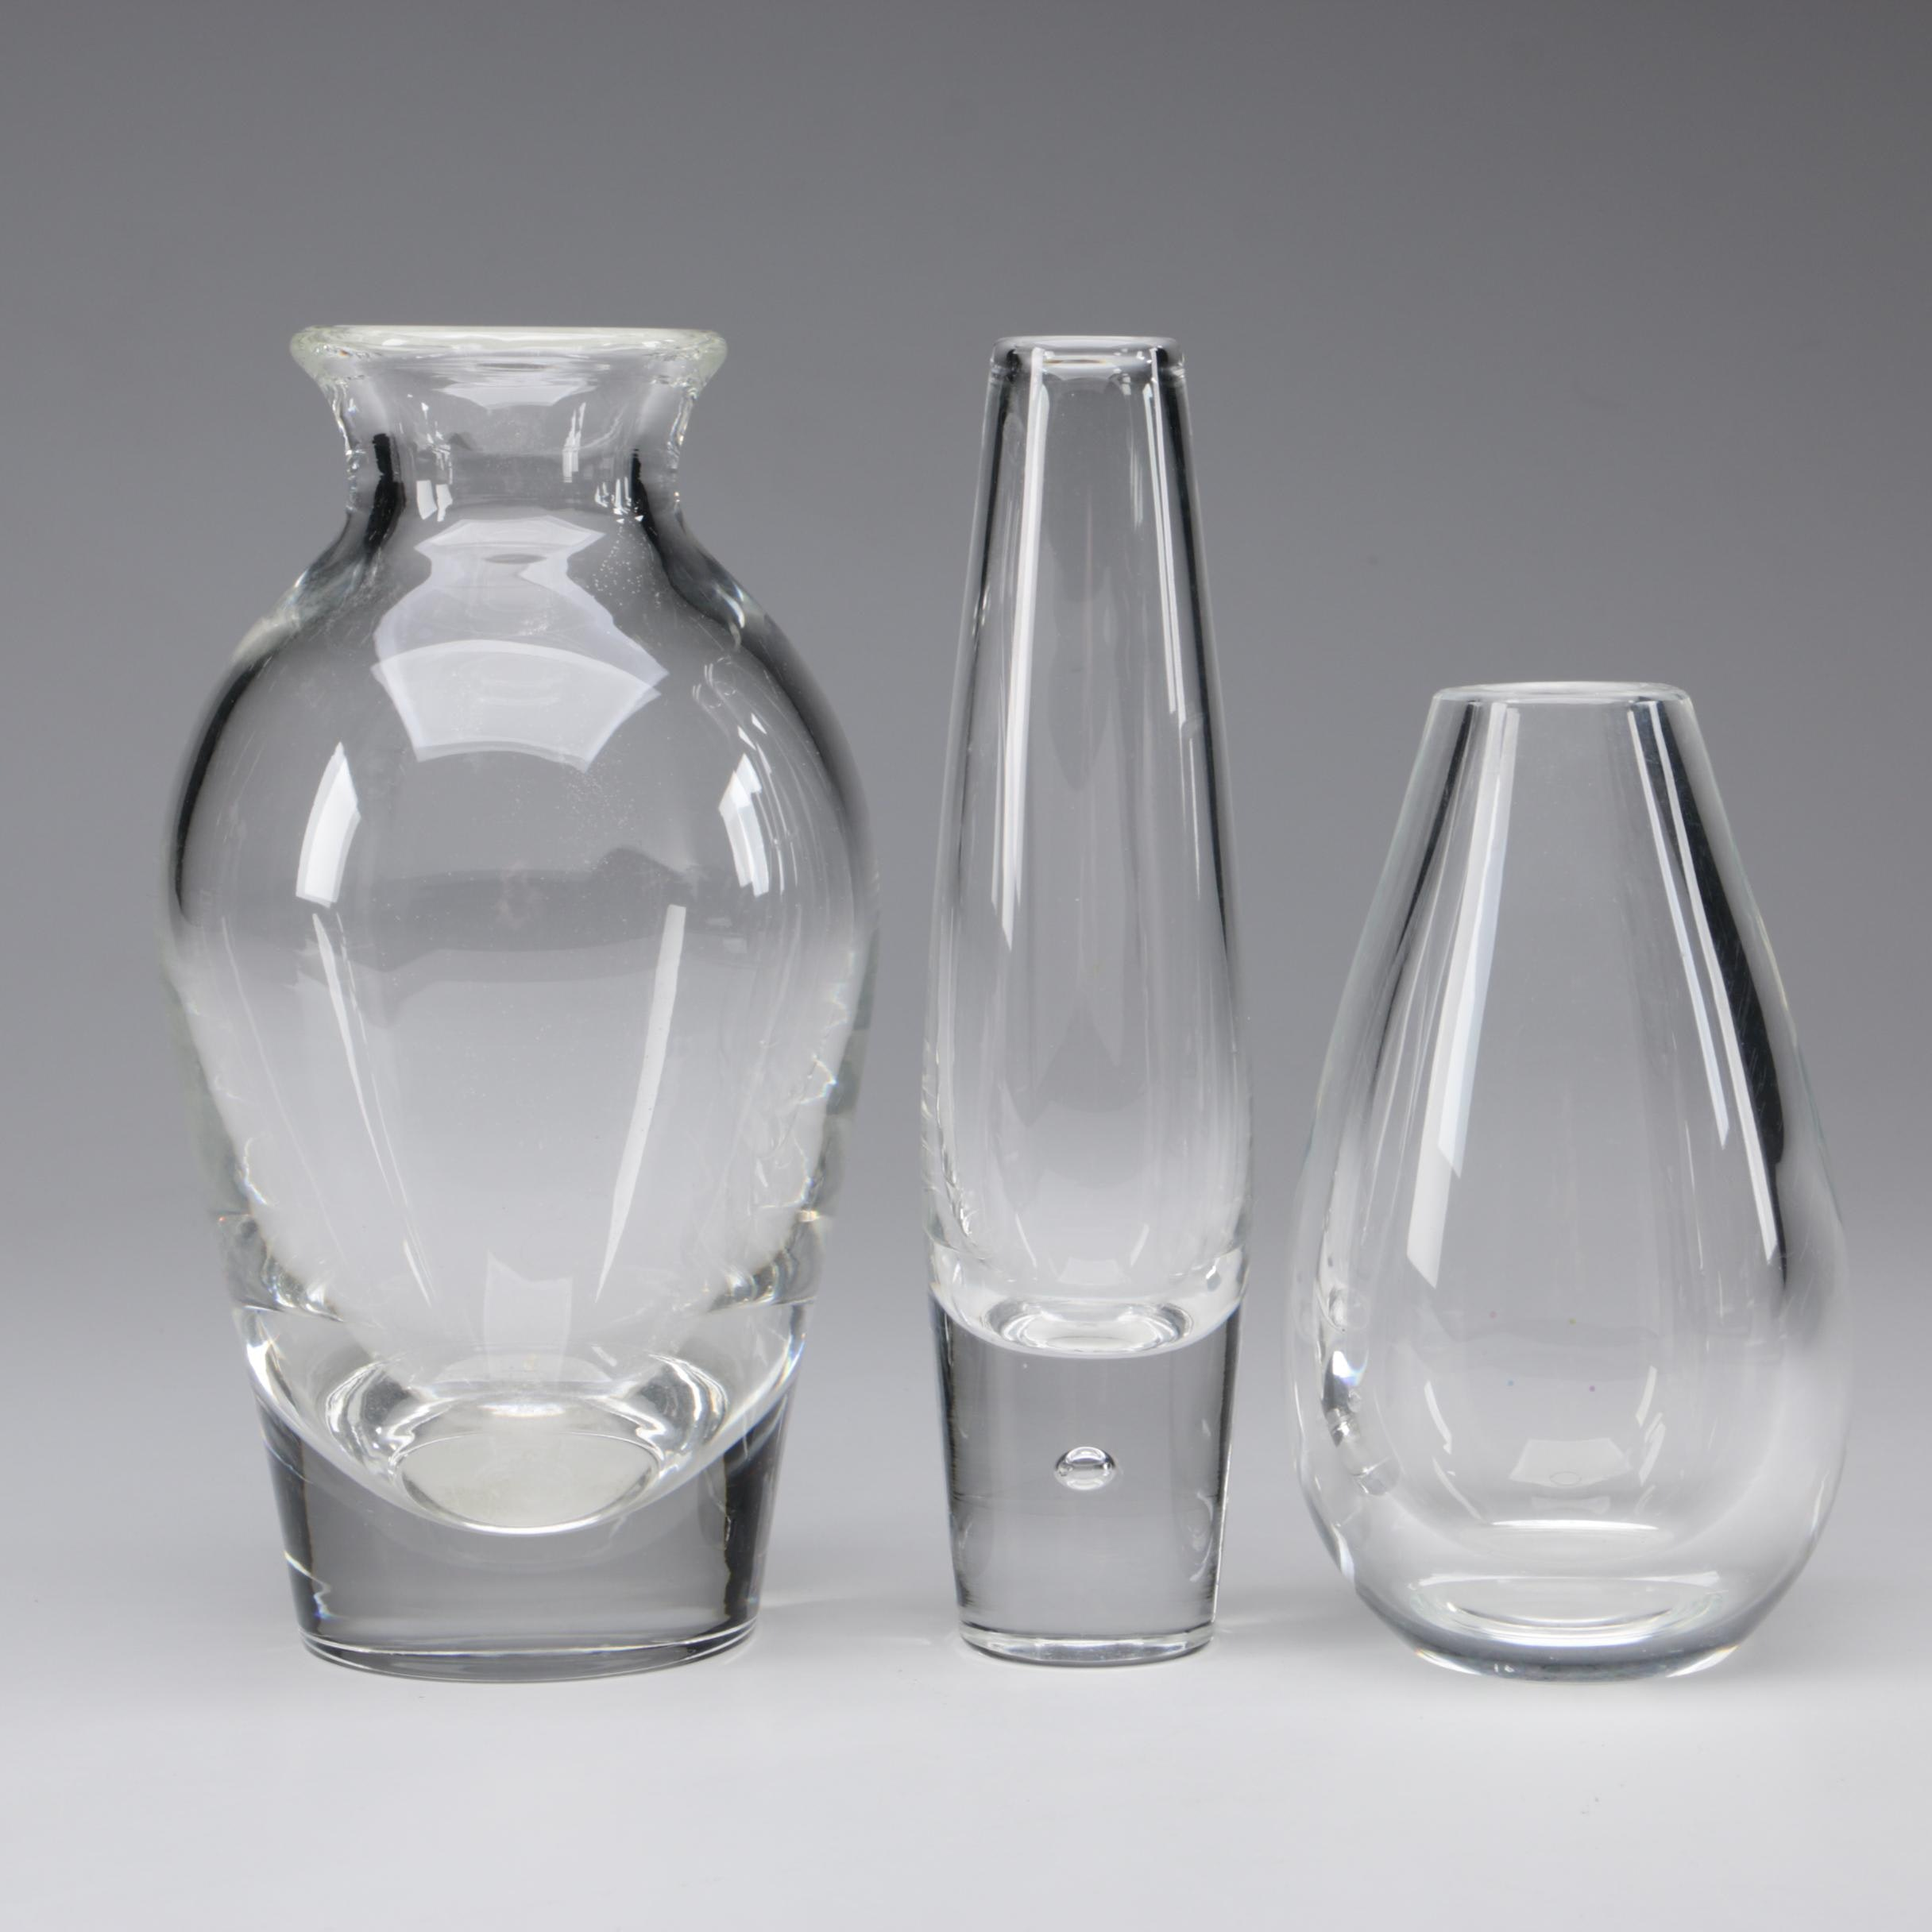 Steuben Art Glass Vases including Teardrop Bud Vase by David Hills, 1949